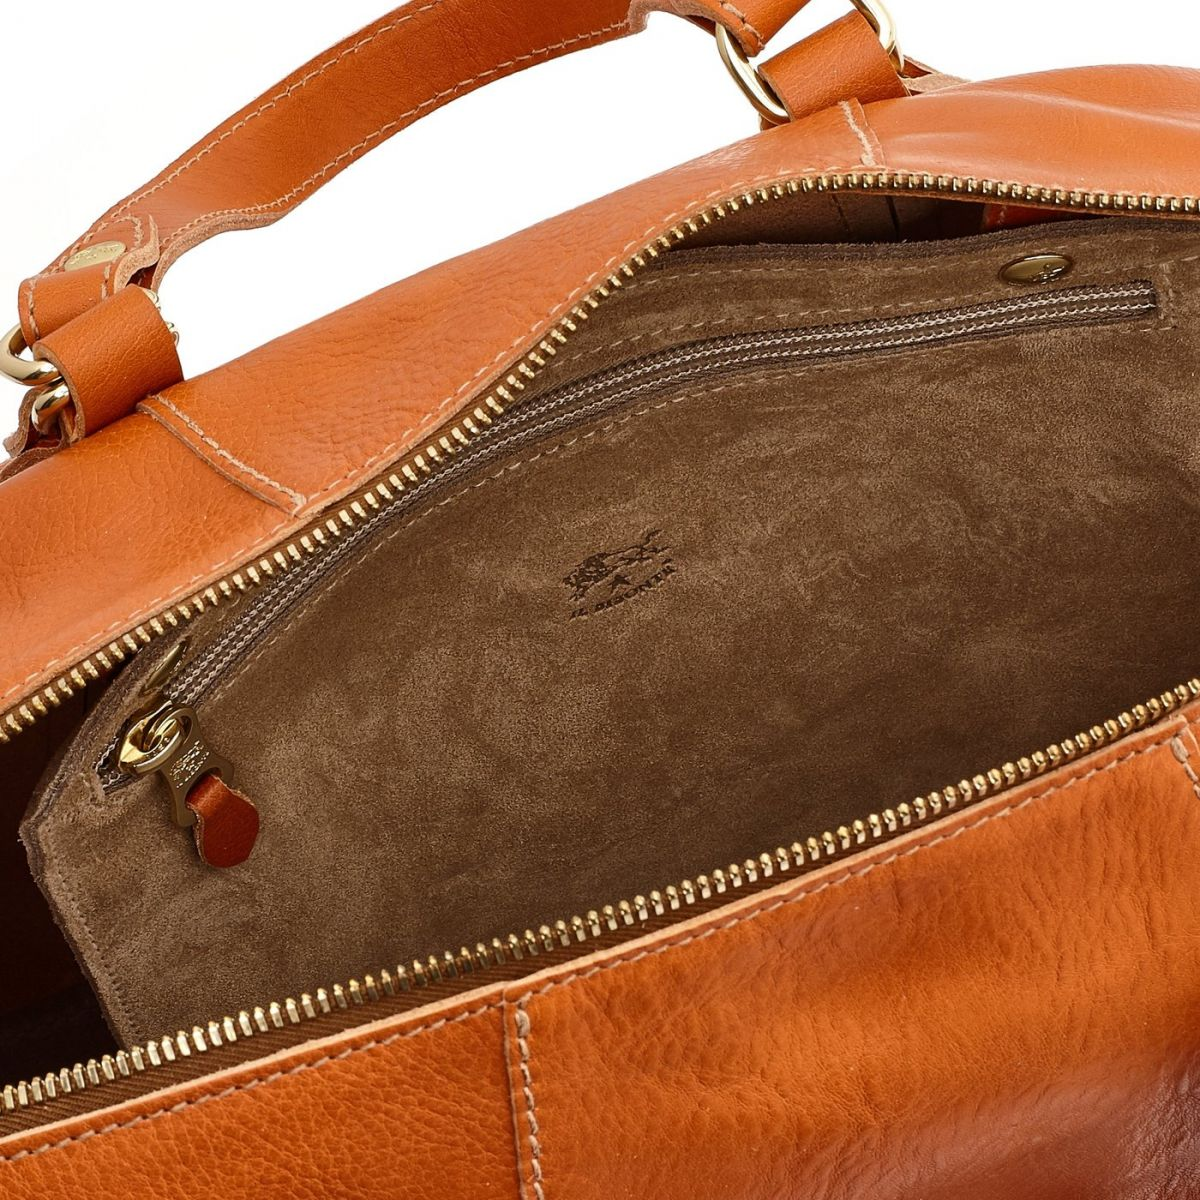 Women's Handbag Stromboli in Cowhide Leather BTH105 color Caramel | Details